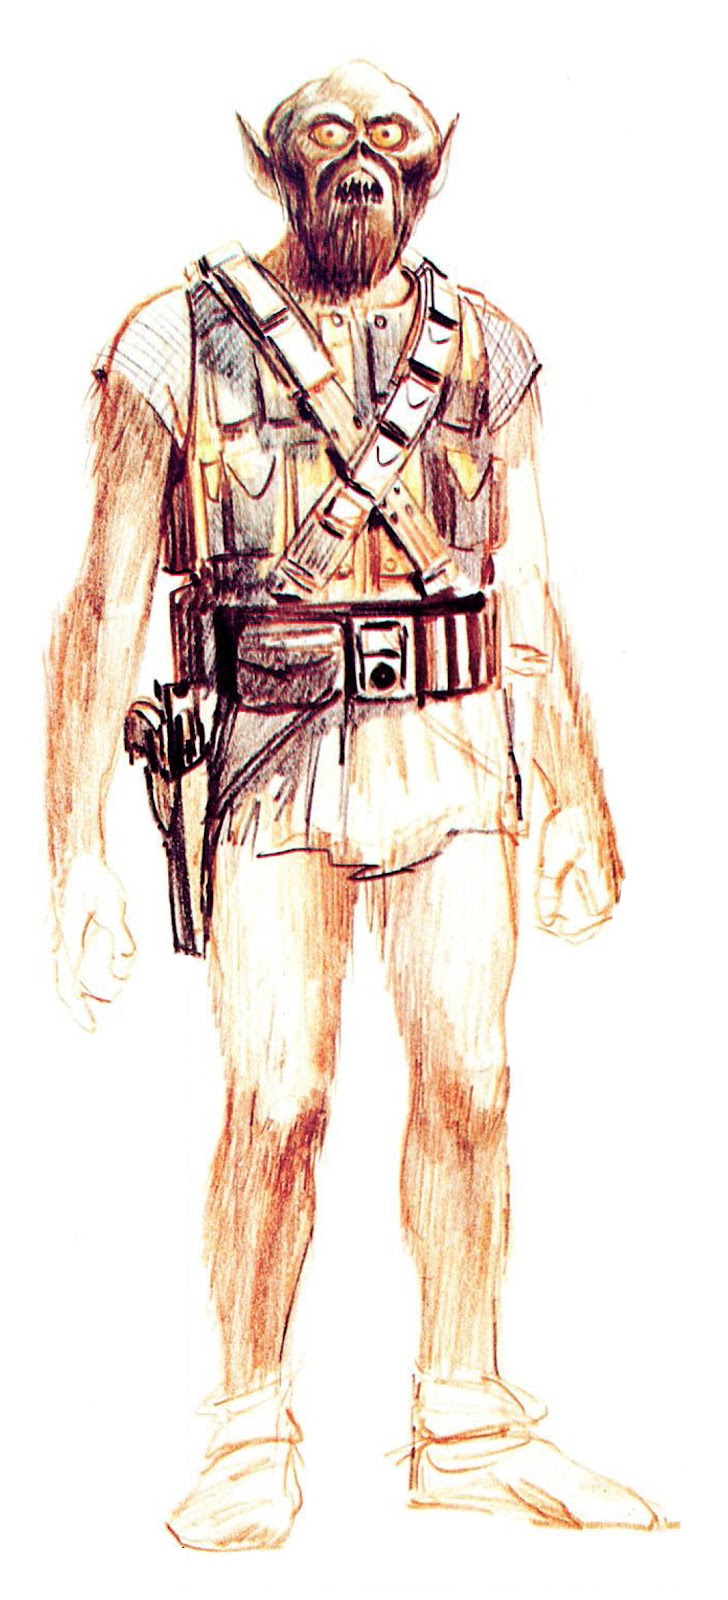 Original Chewbacca Conceptual art design